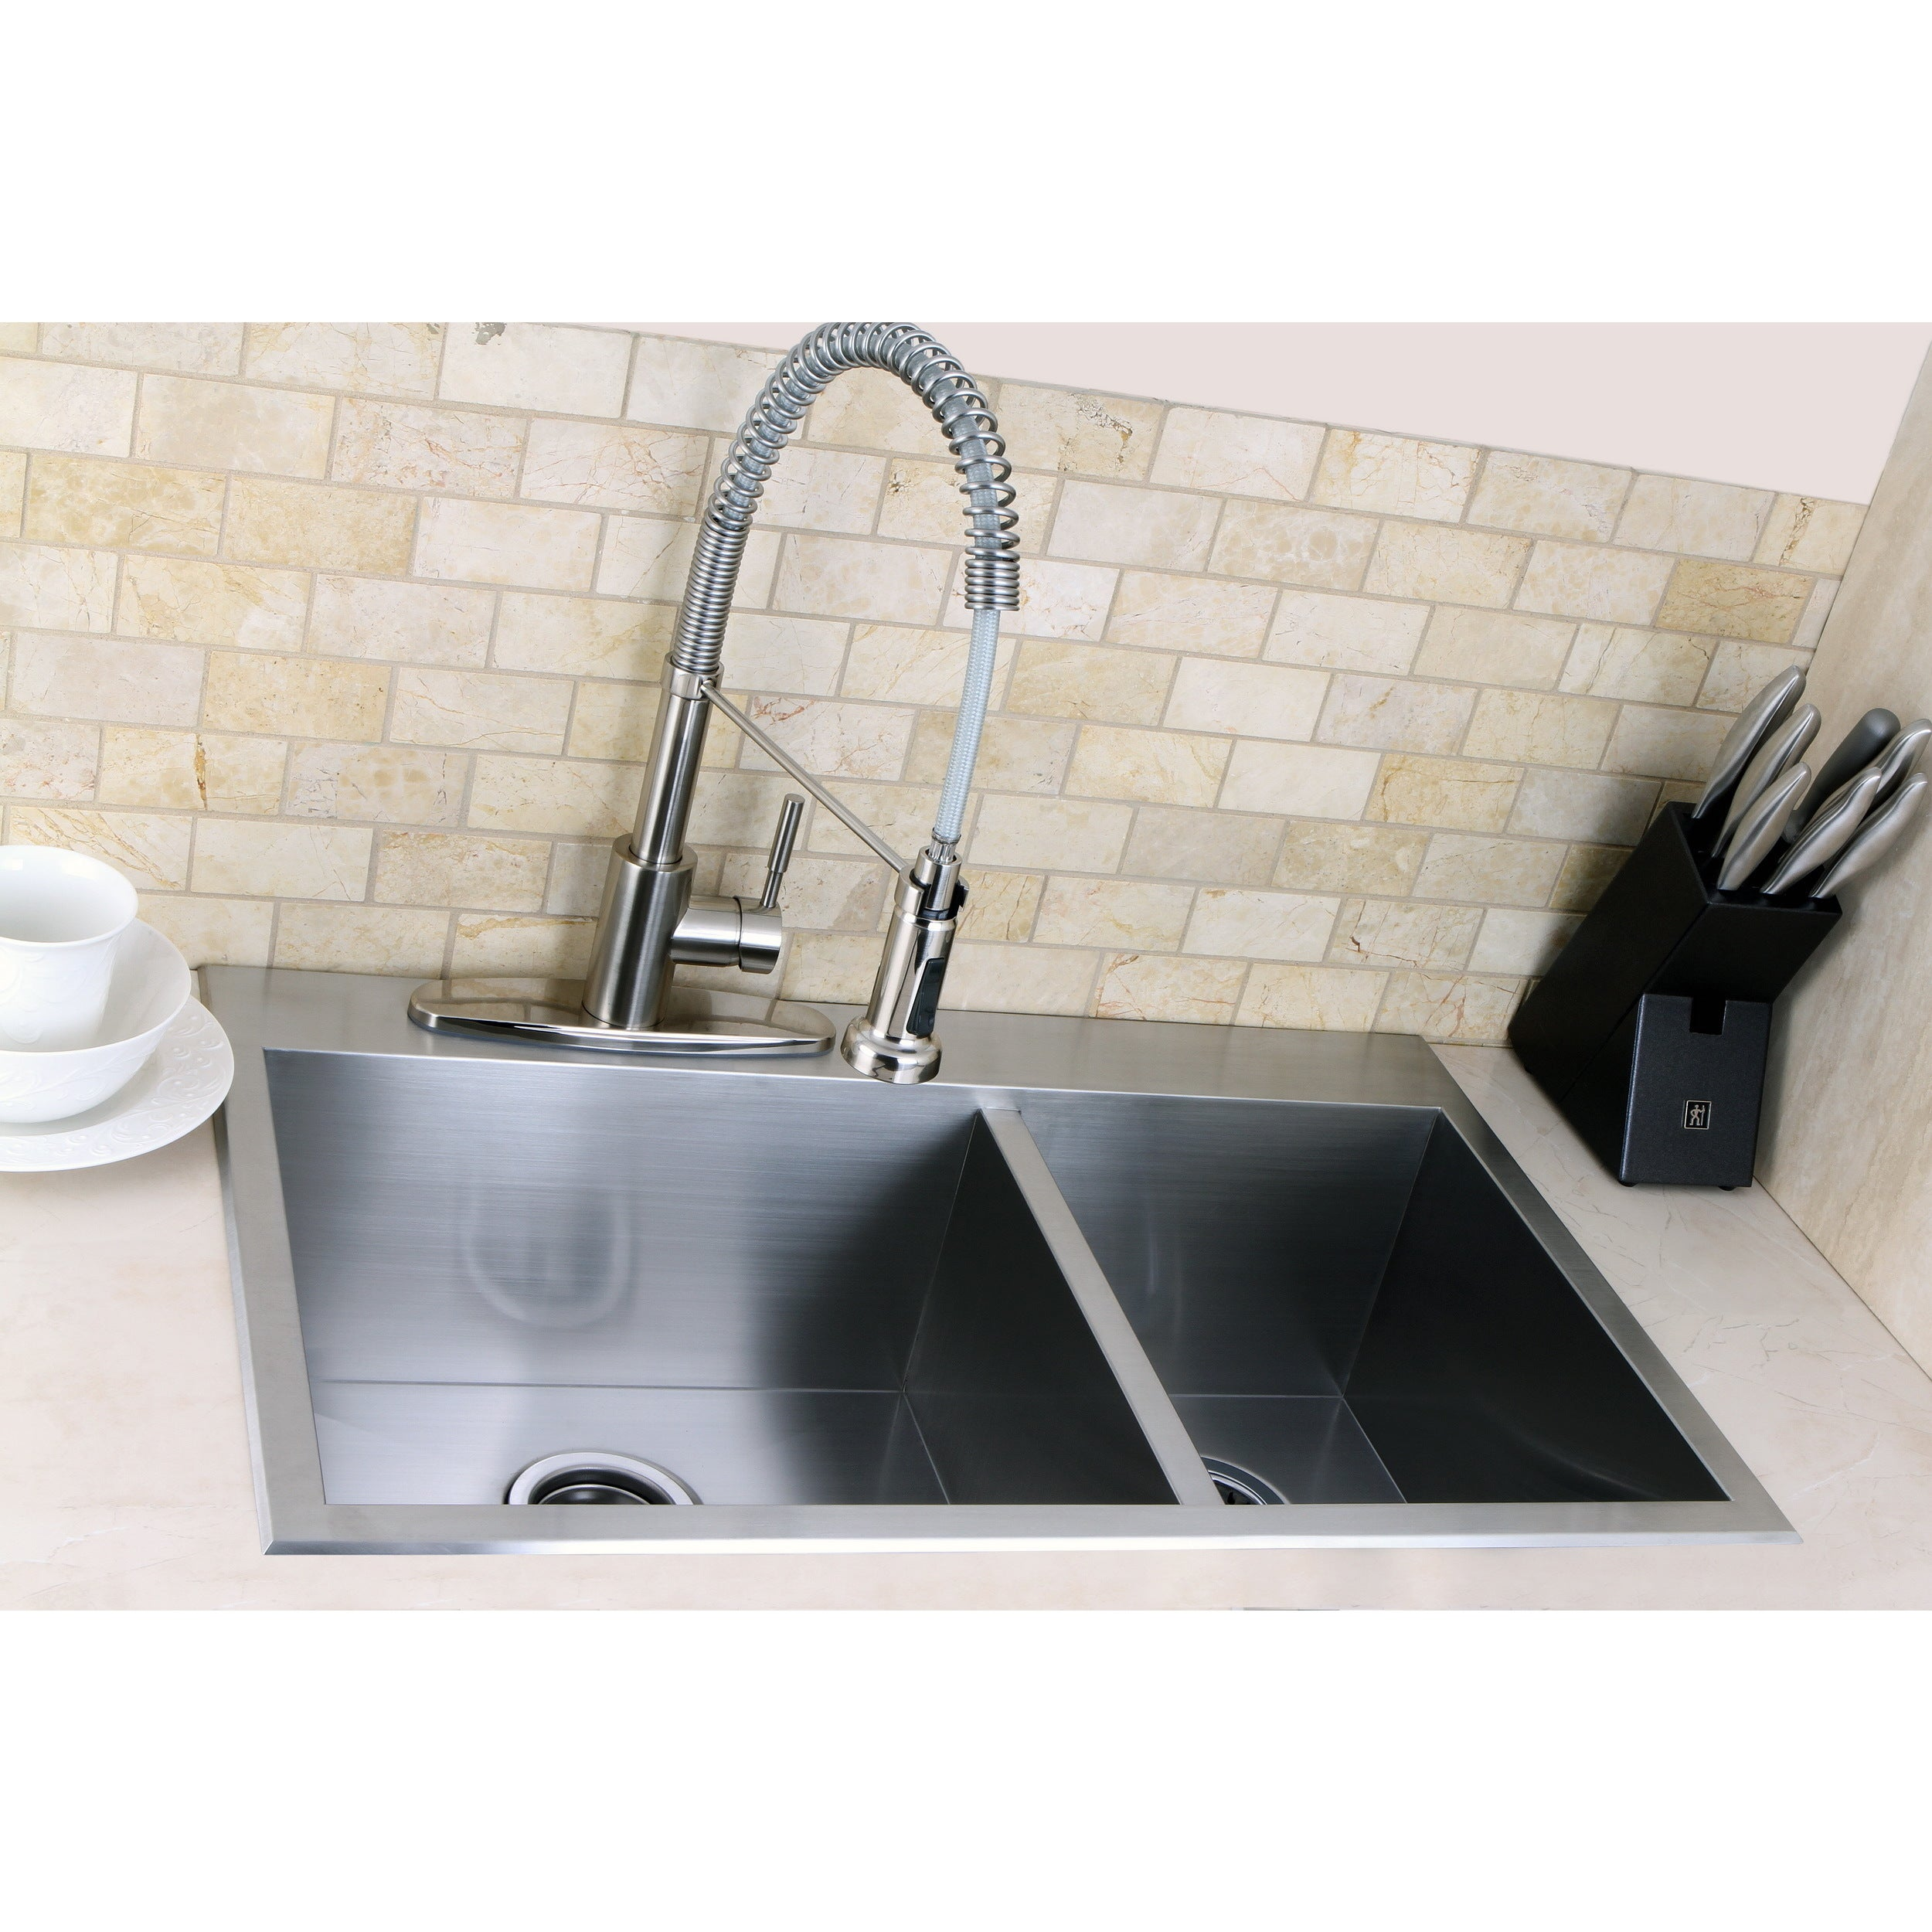 Topmount 31.5-inch Double Bowl Stainless Steel Kitchen Sink - Free ...